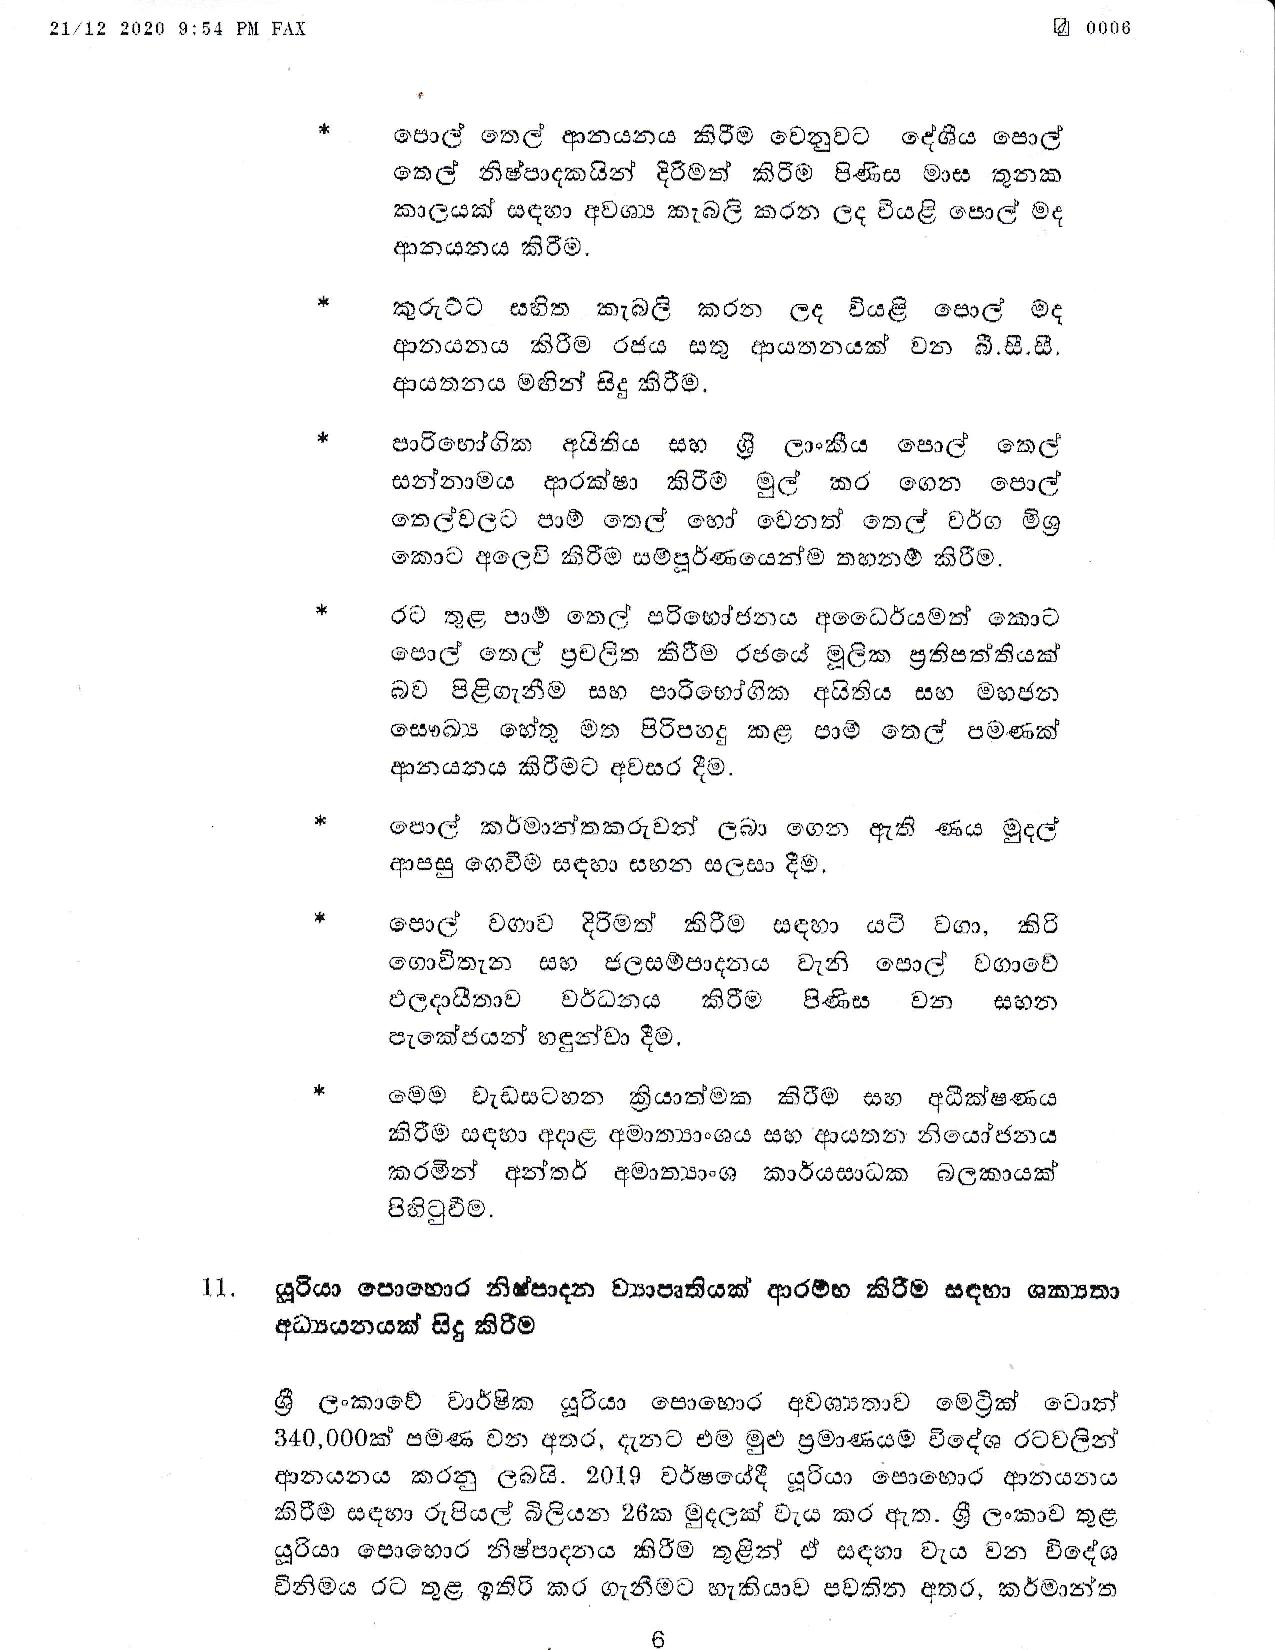 Cabinet Decision on 21.12.2020 page 006